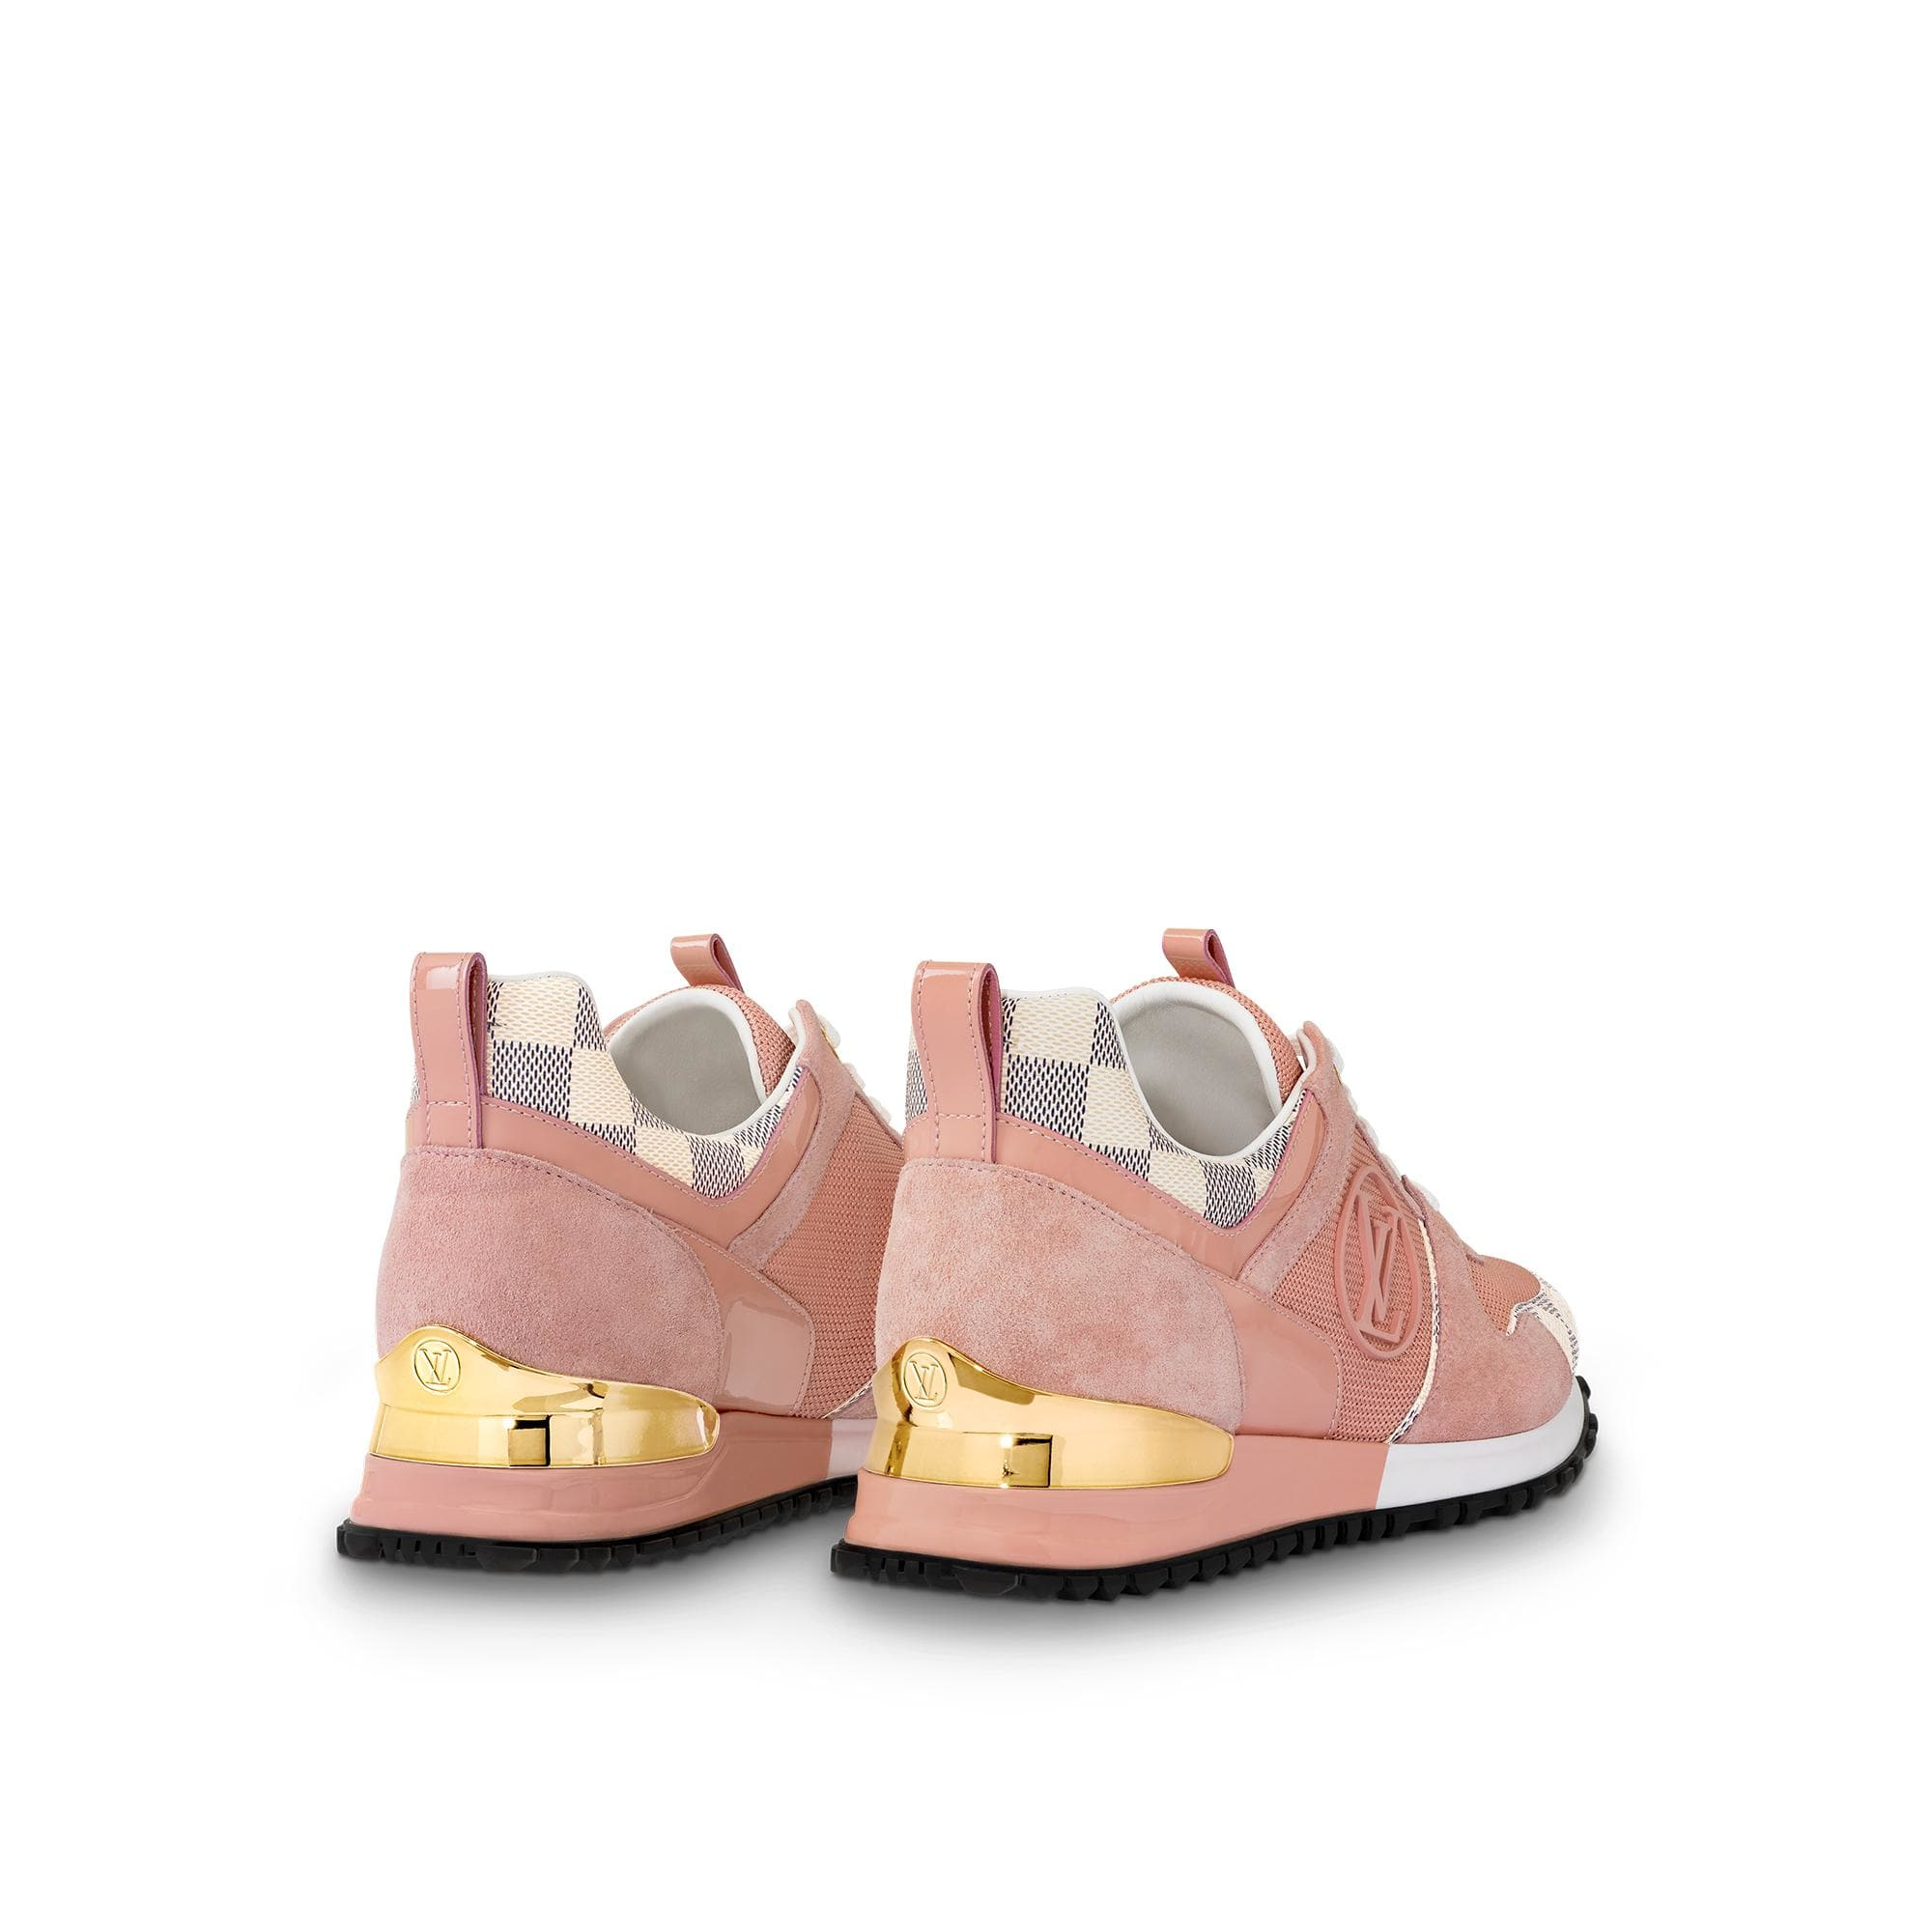 99472fbcb1f7 Louis Vuitton Run Away Sneaker - Rose Pink Boutique